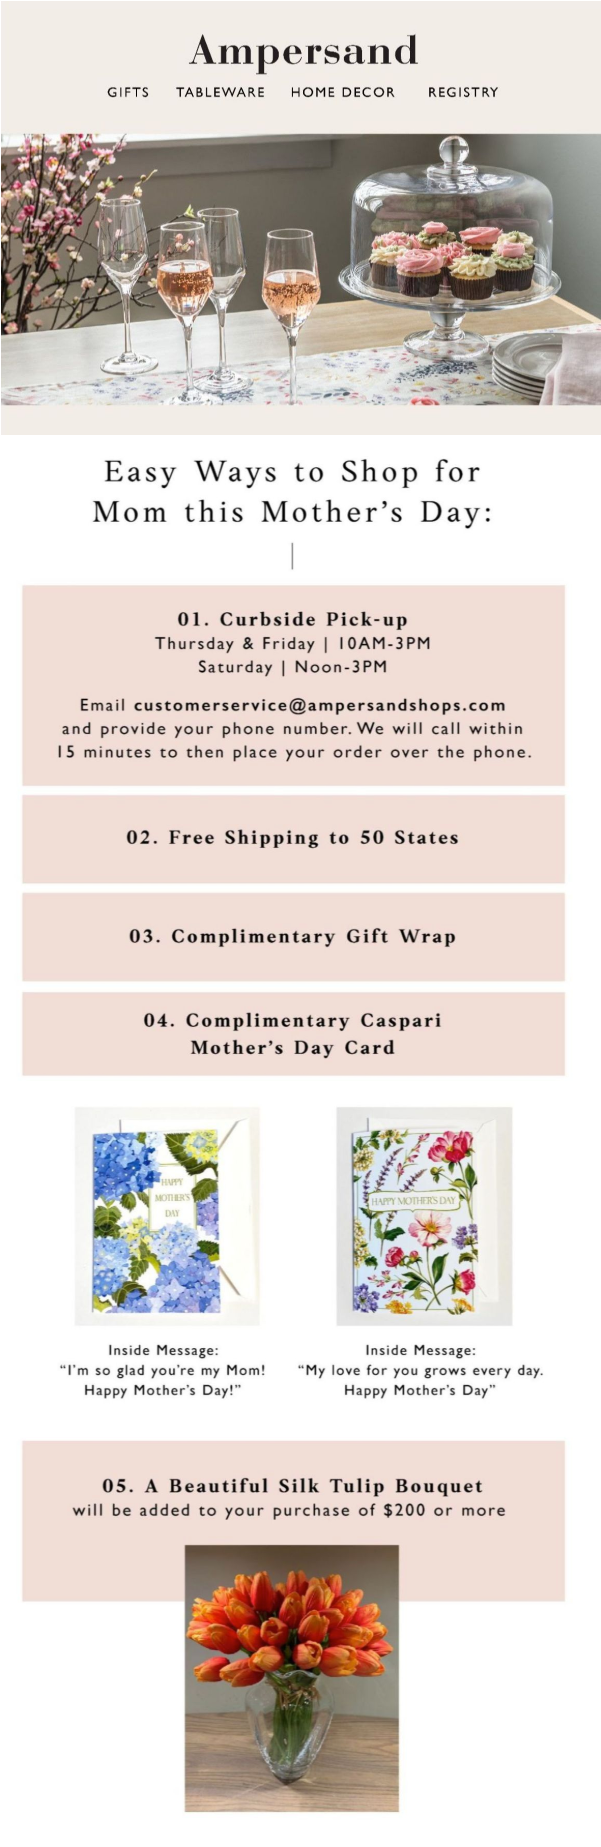 ampersand-were-making-it-easy-shop-for-mothers-day